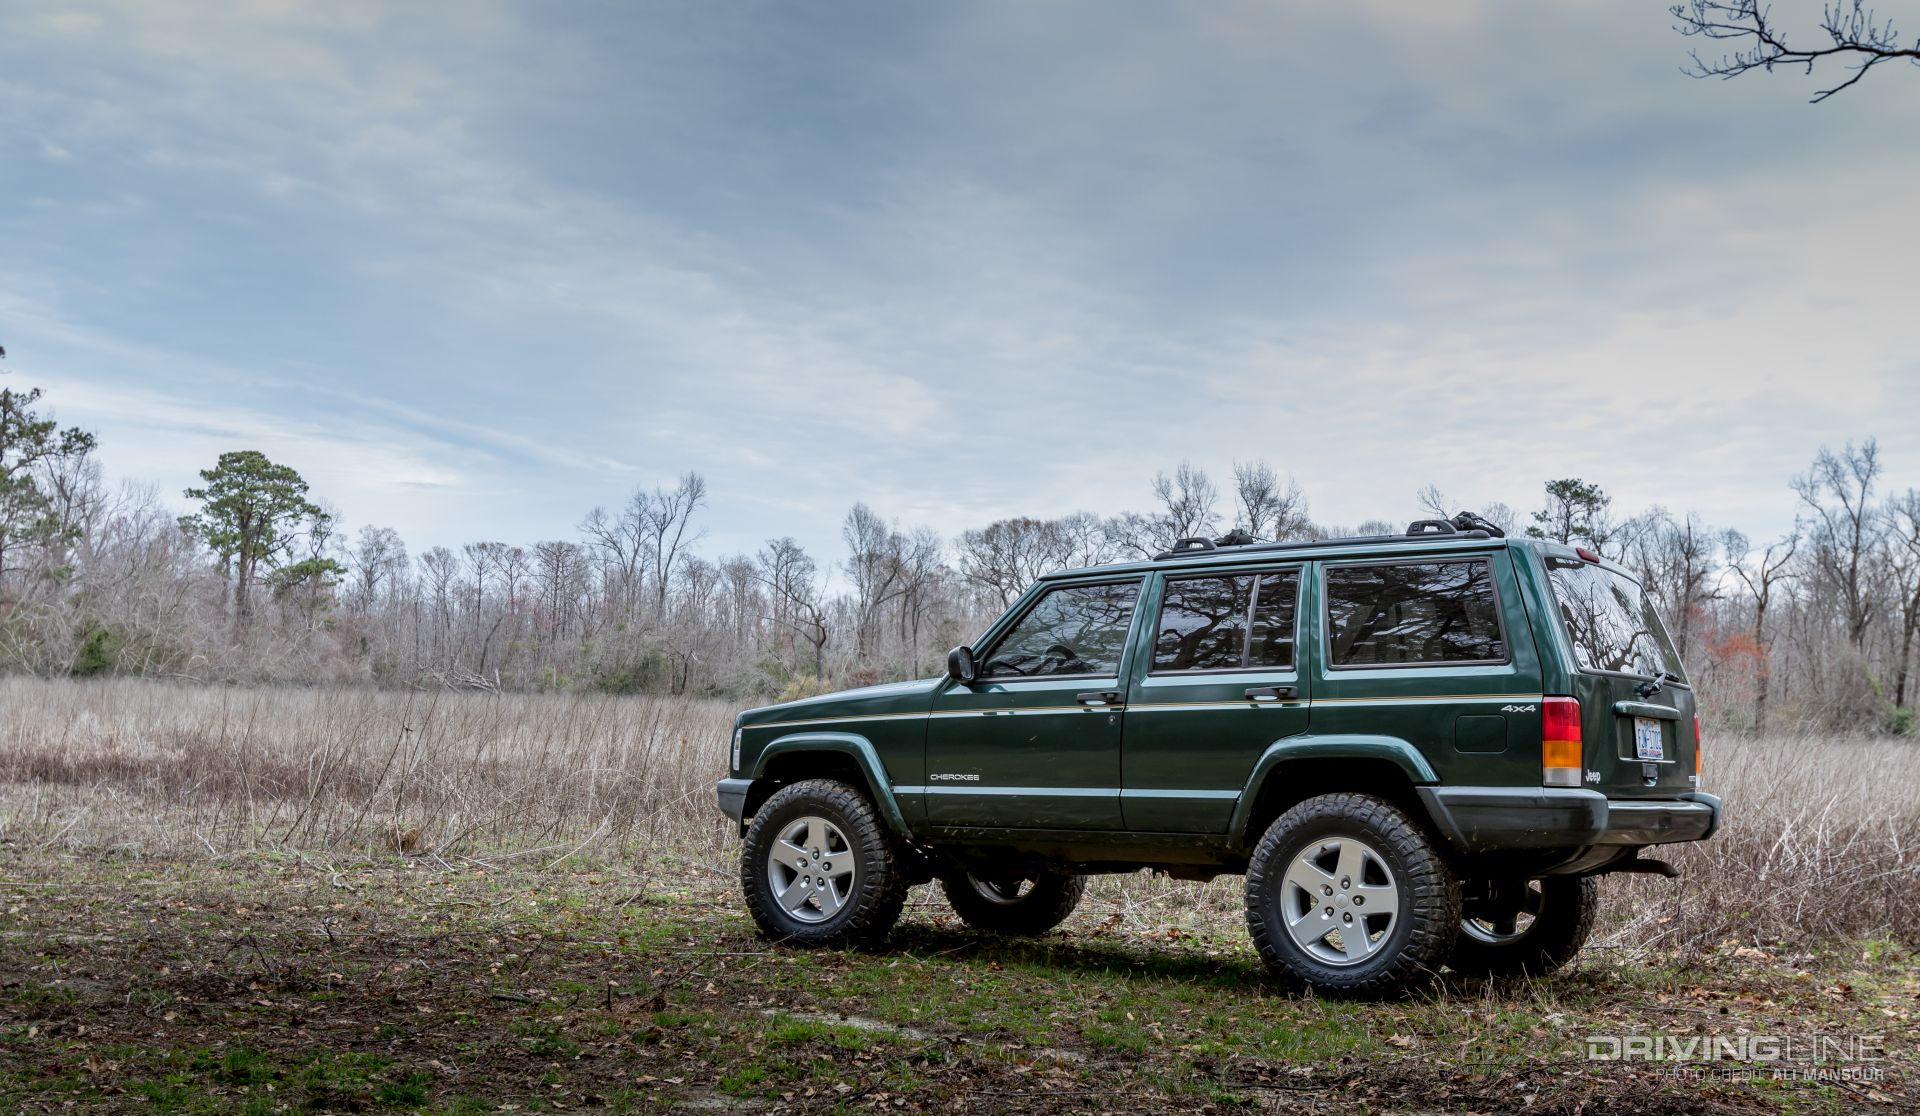 Project Recycled Green Part 1: 2000 Jeep Cherokee XJ Build